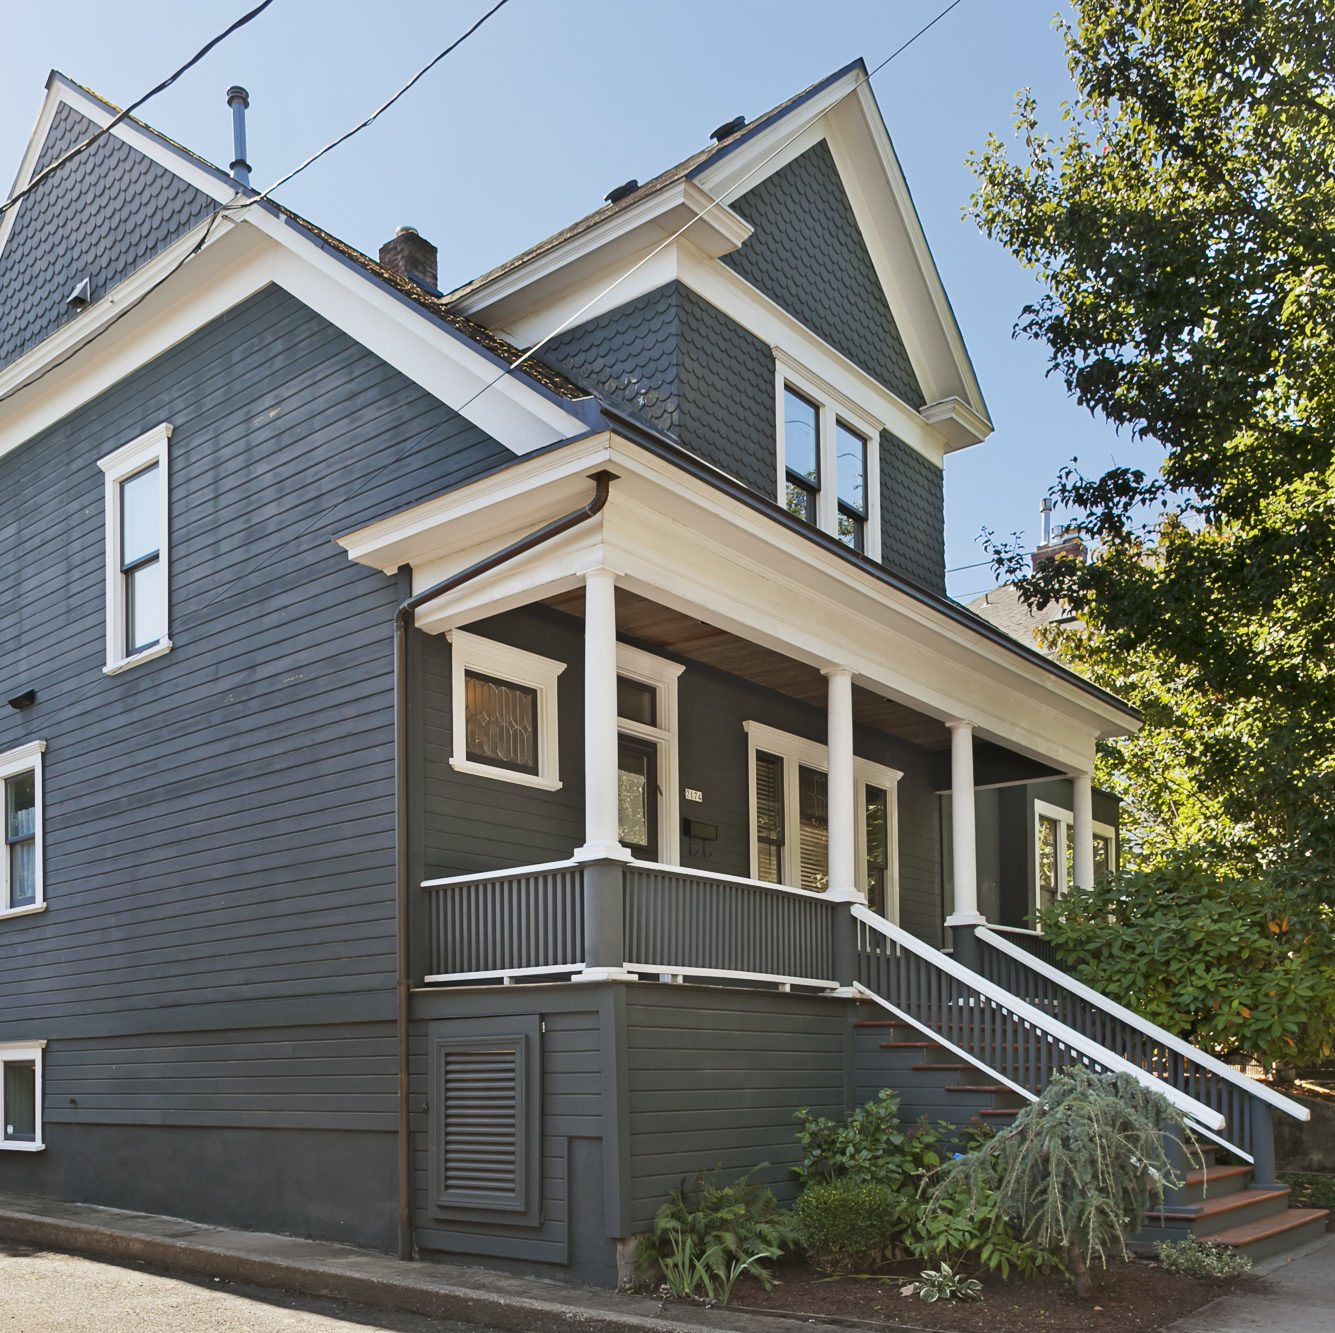 PORTLAND REAL ESTATE MARKET STATISTICS